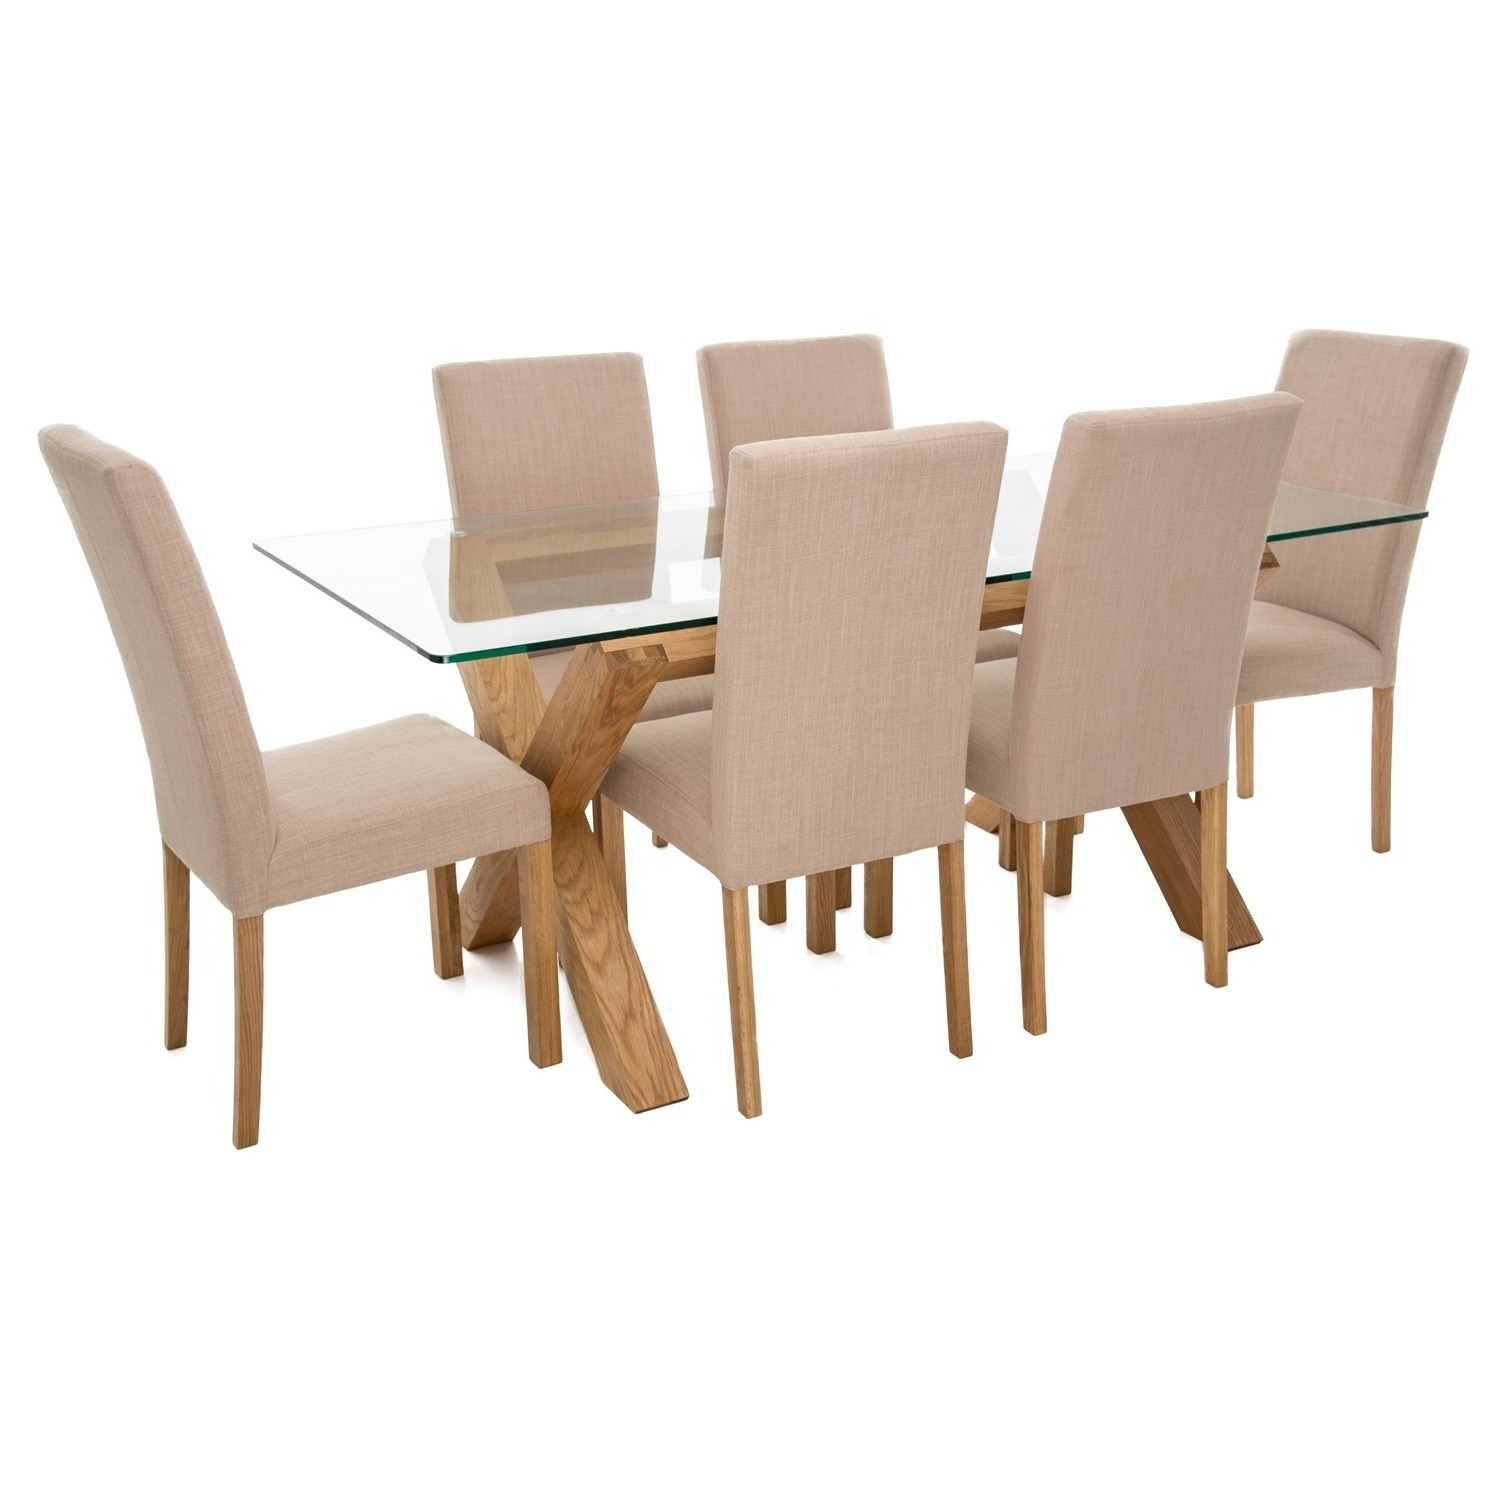 2018 Dining Table And Chairs How Perfect Your Dining Room Can Round Glass with regard to Glass Dining Tables 6 Chairs